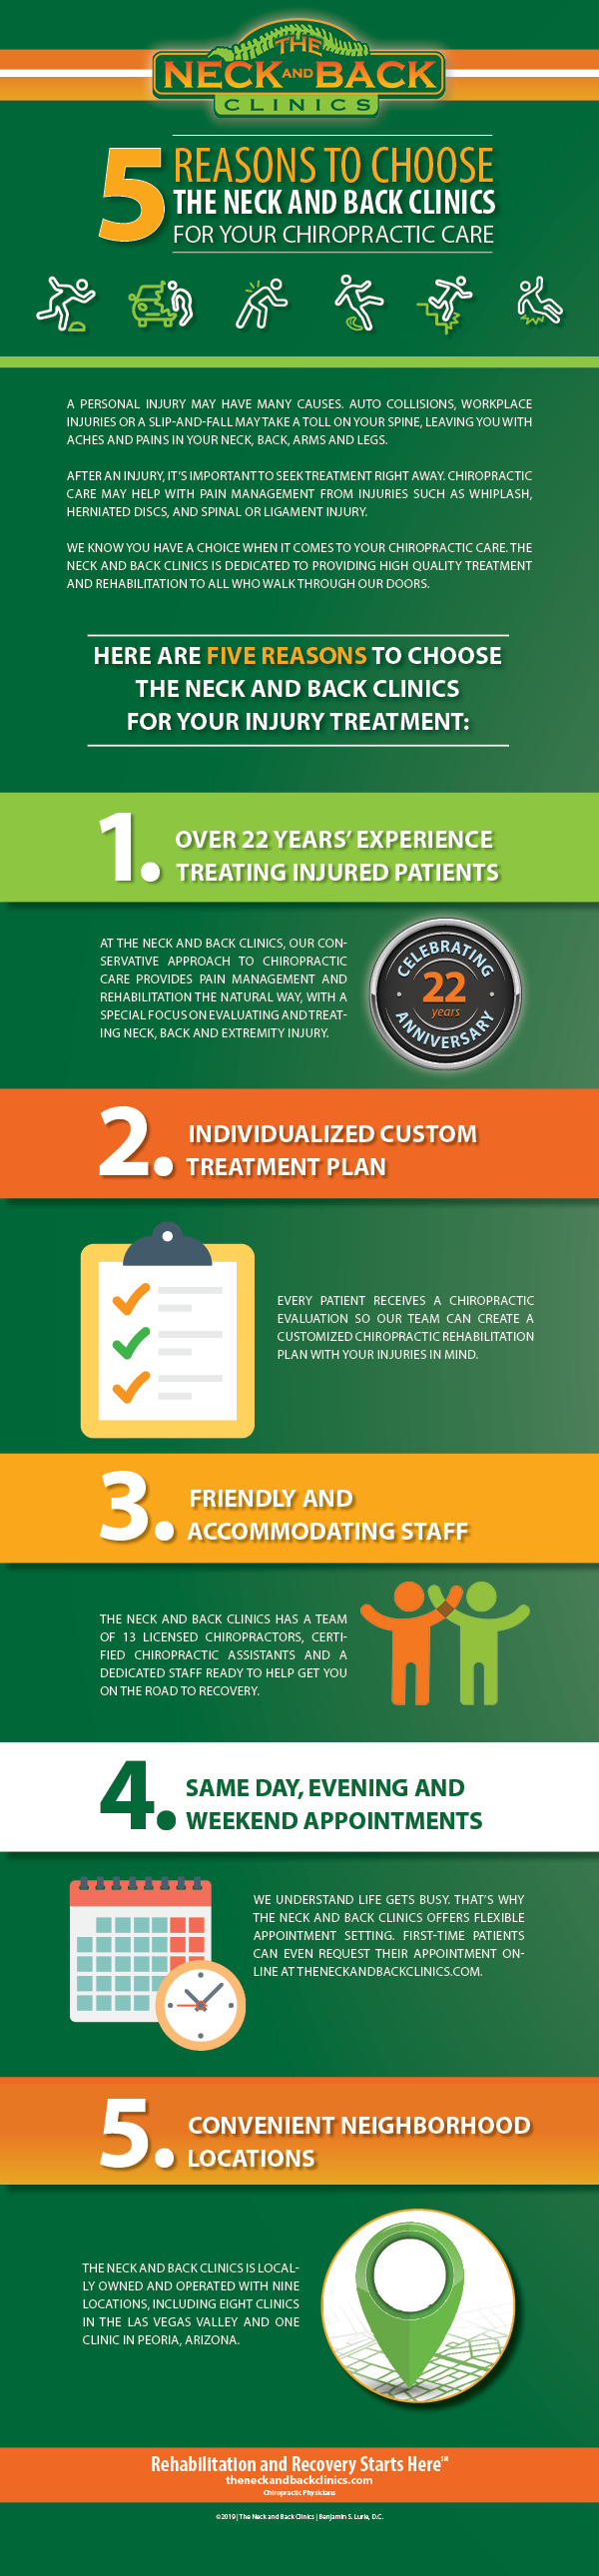 5 Reasons to Choose The Neck and Back Clinics